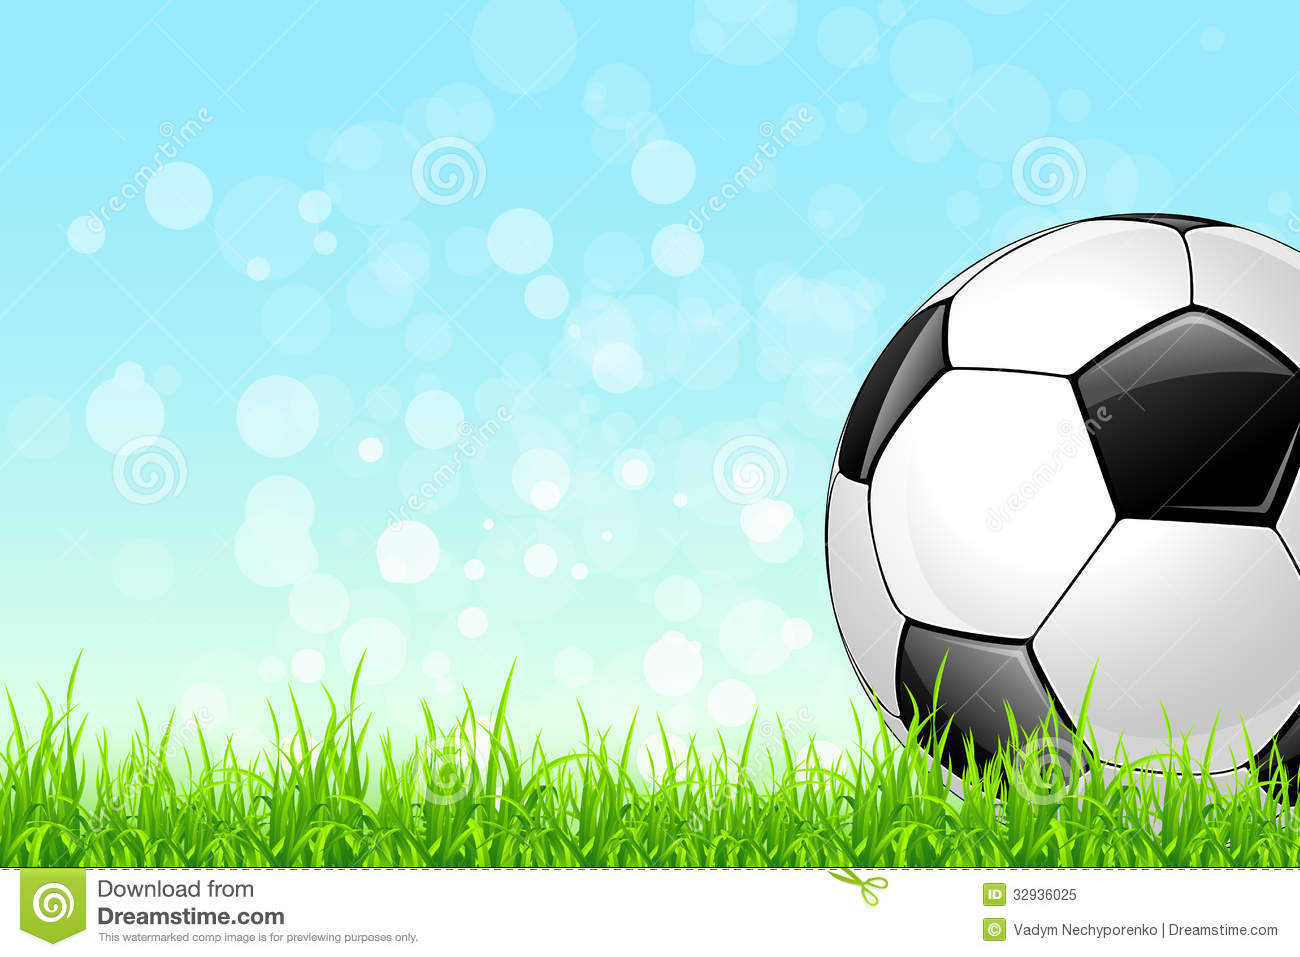 Soccer Football On Green Field With Blue Sky Background: Soccer Ball On Green Grass Background Royalty Free Stock